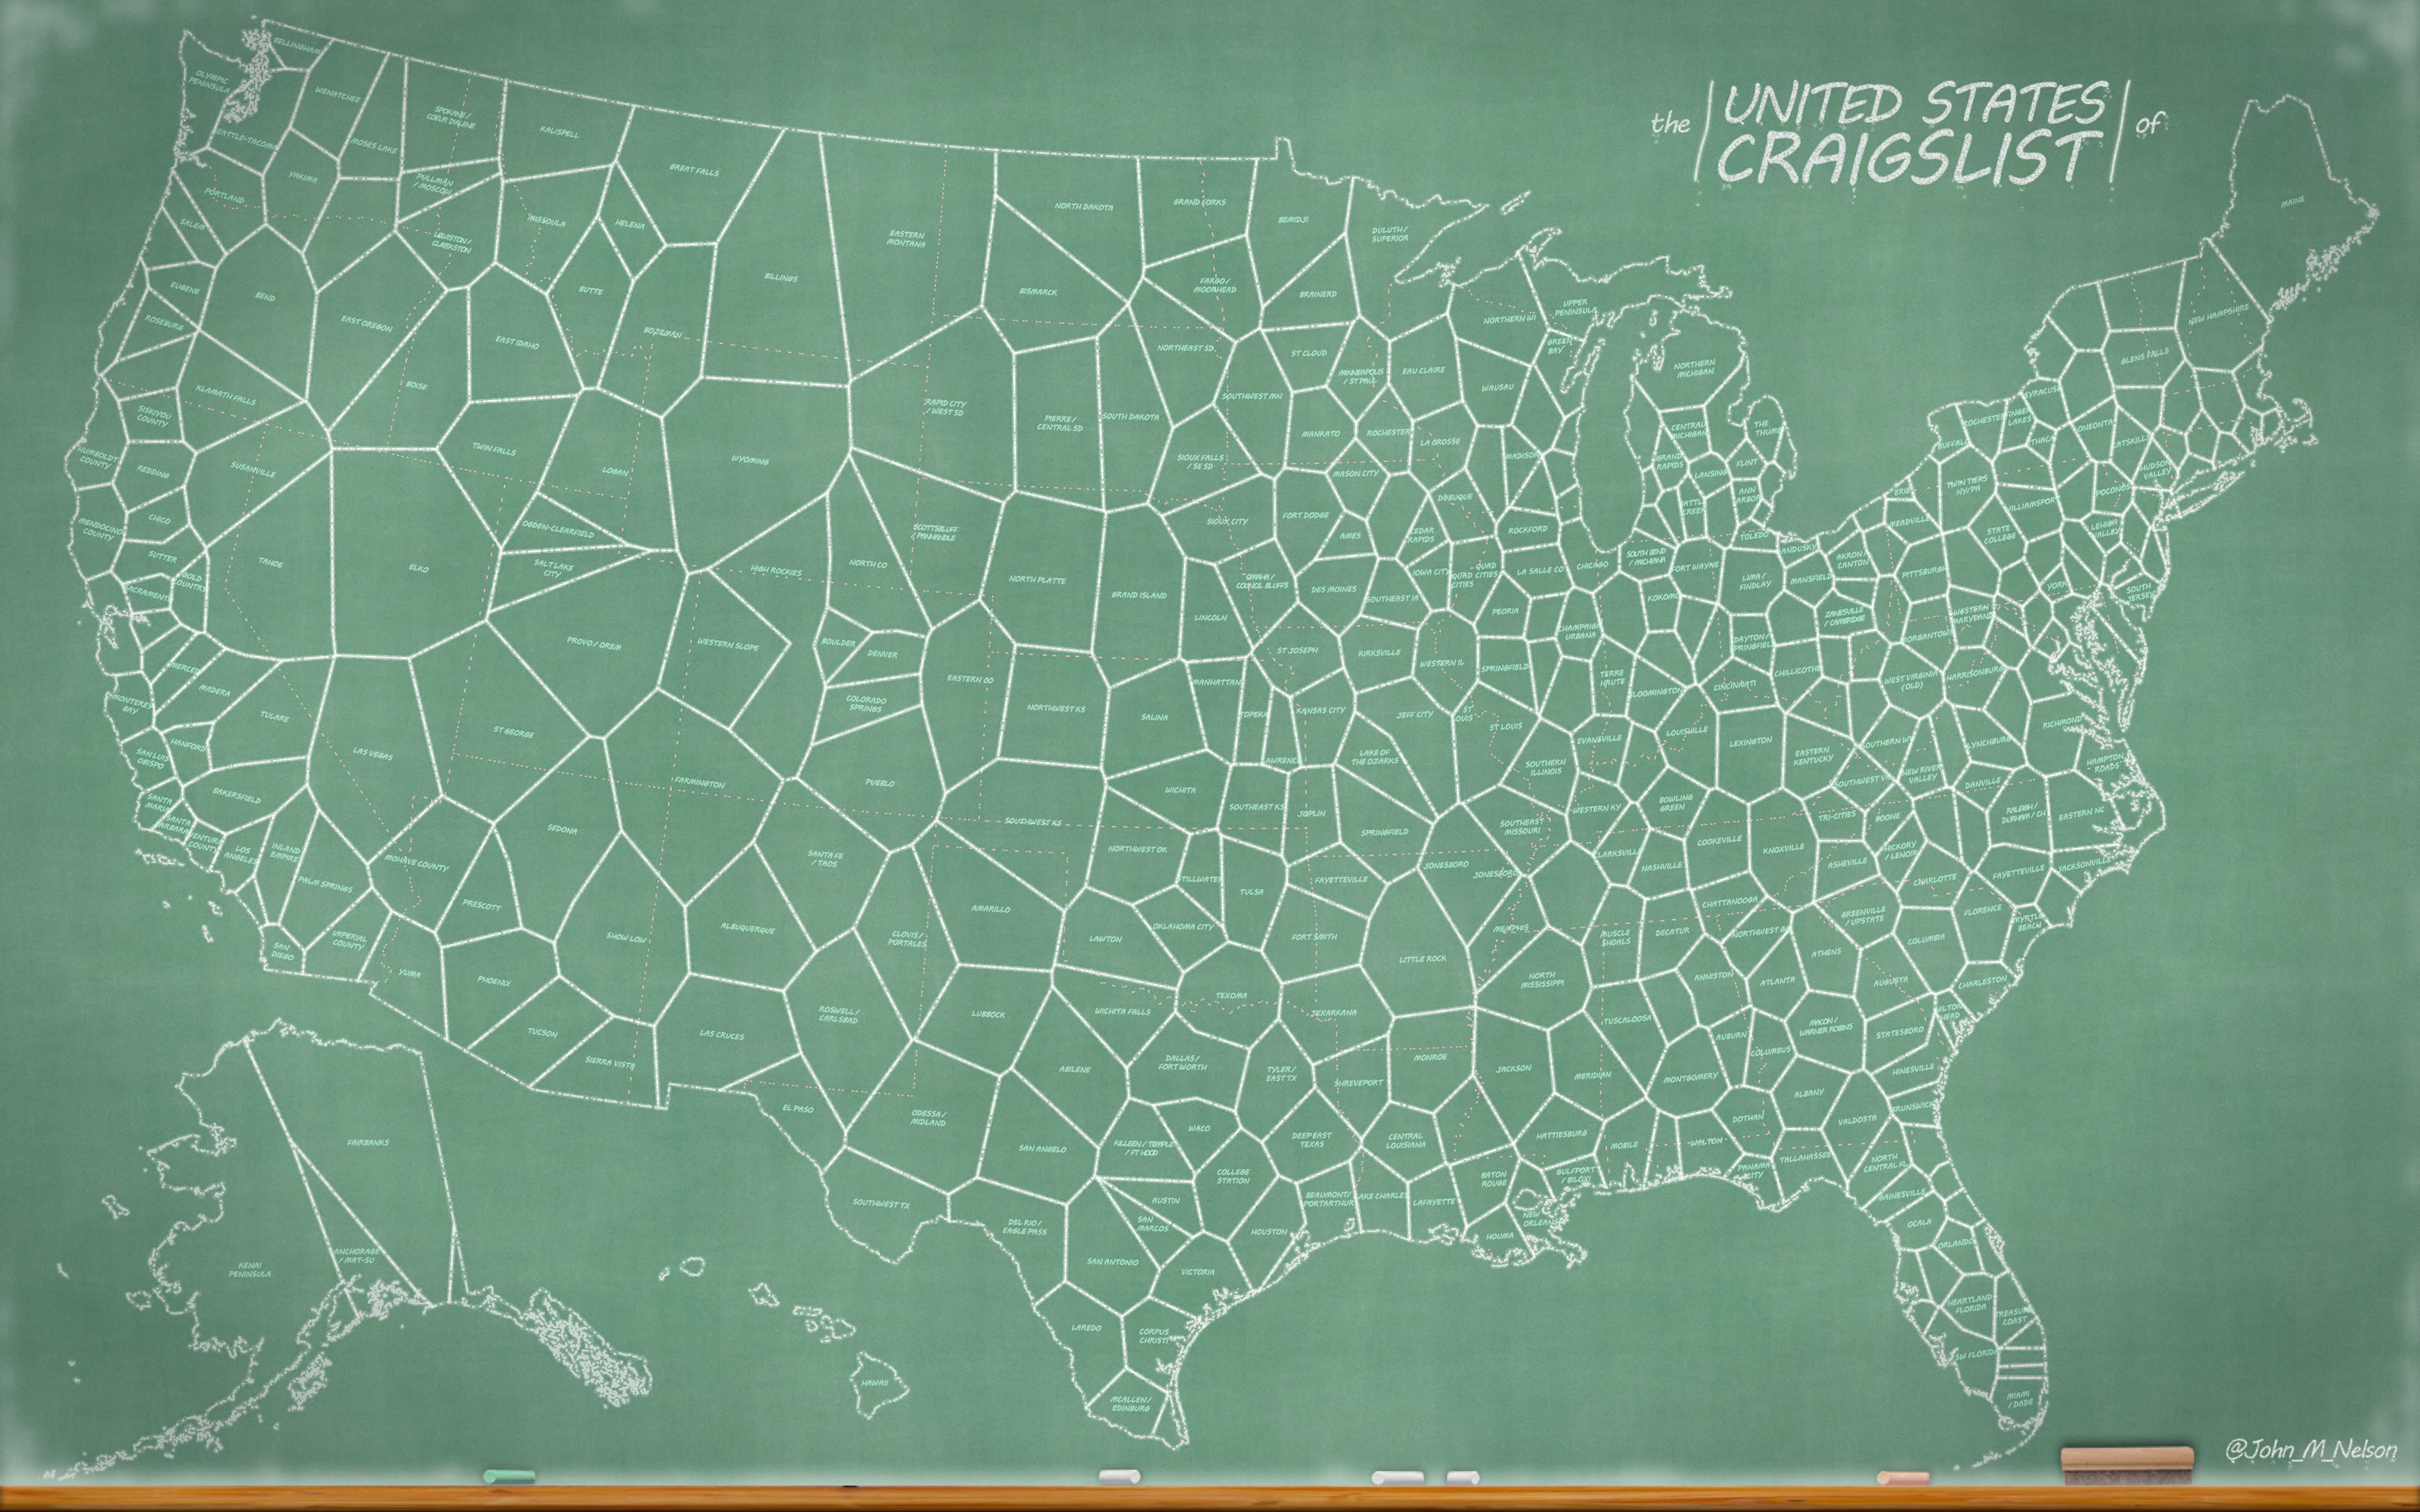 HowTo United States Of Craigslist Chalkboard Map Adventures - Us map gradient generator